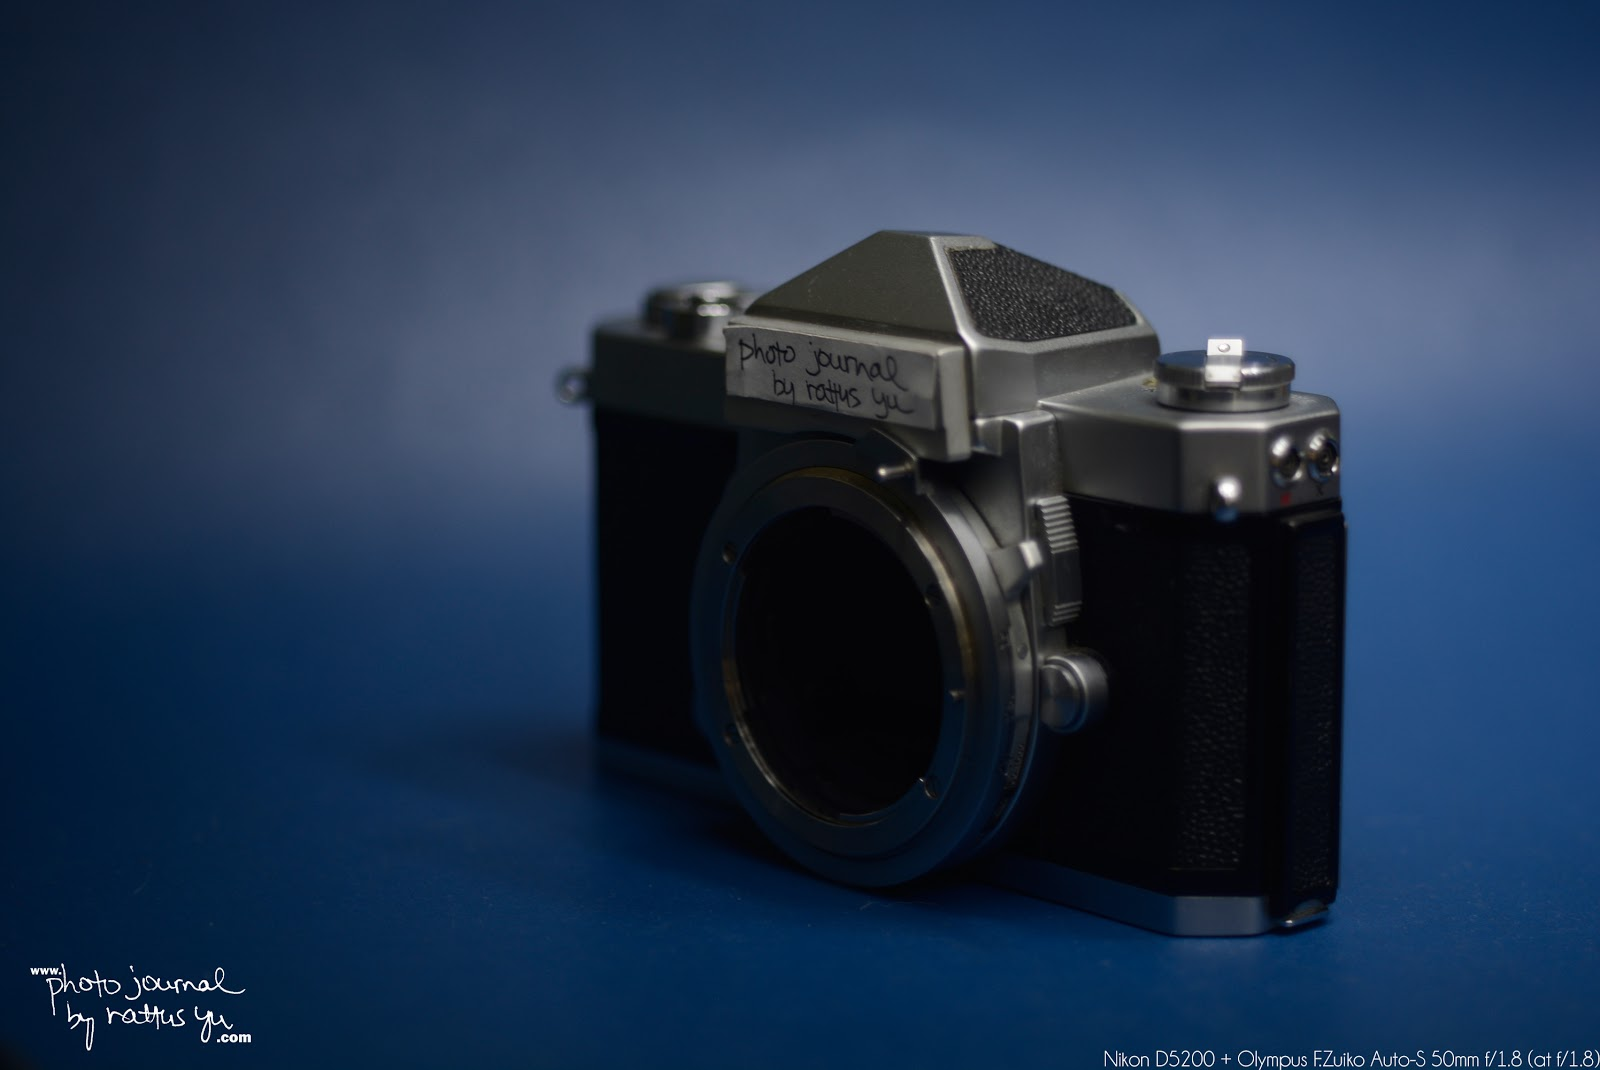 Olympus F.Zuiko Auto-S 50mm f/1.8... Converted to Nikon Mount